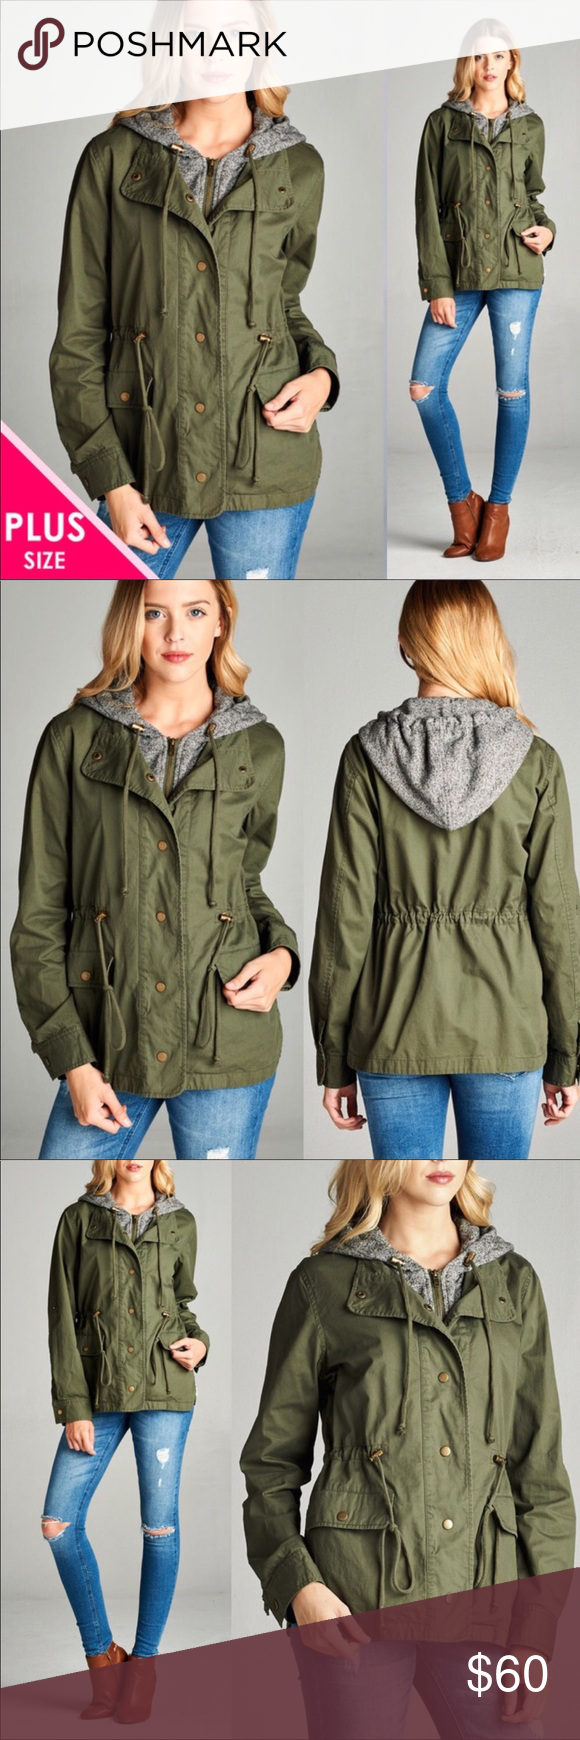 Plus size green double layer utility jacket boutique green